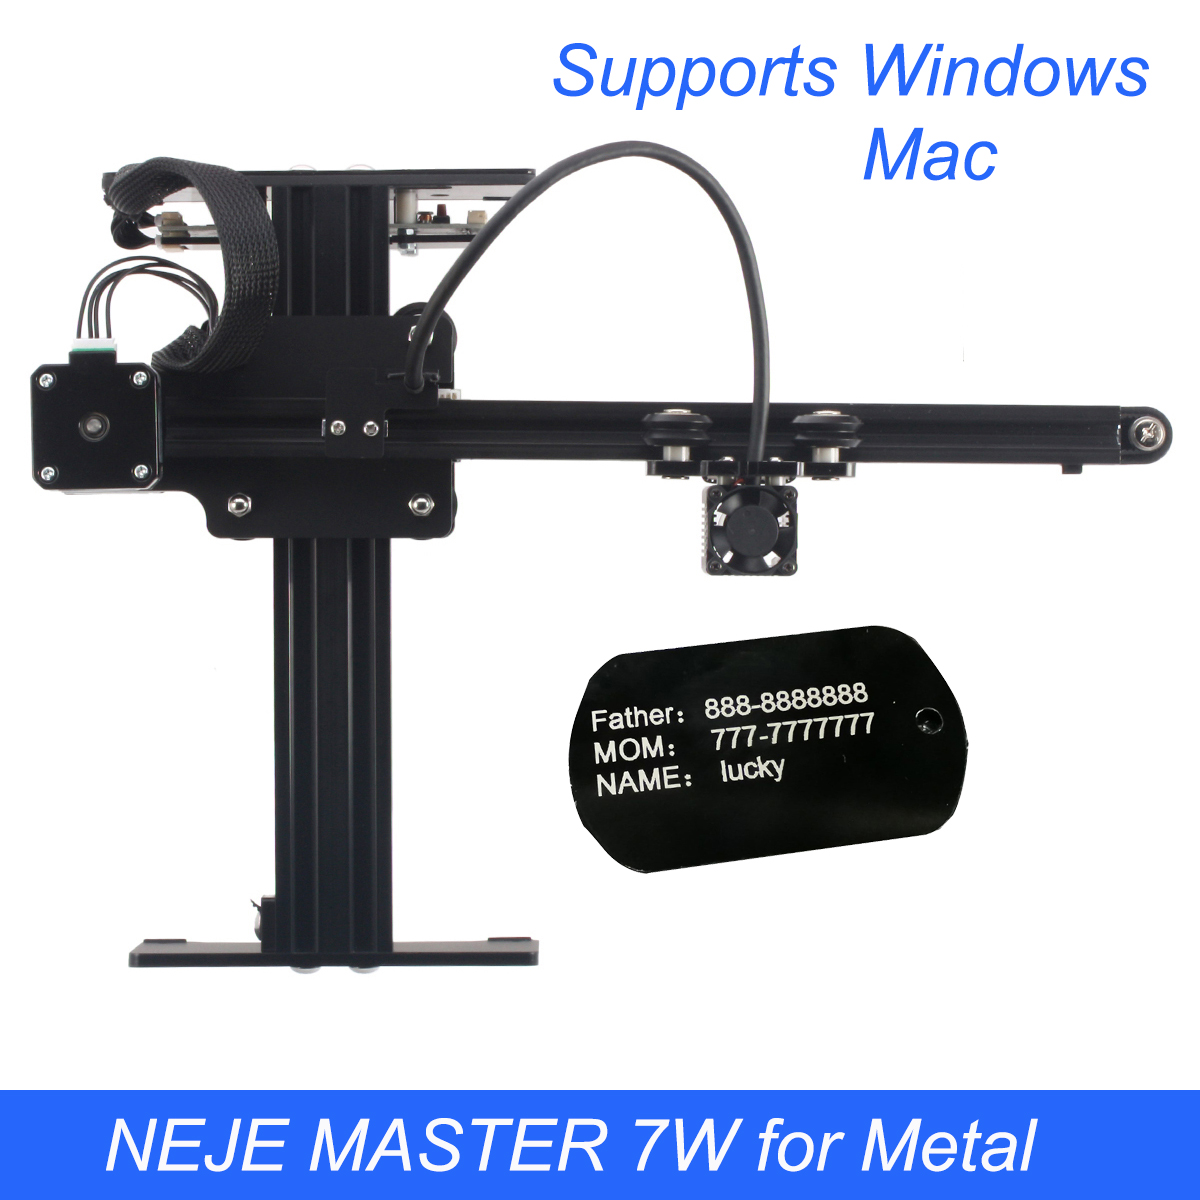 NEJE MASTER 3500mW /7W Laser Engraving Machine DIY Mini CNC Cutting Wood Router Desktop Engraver For Metal/Wood/Plastics(China)